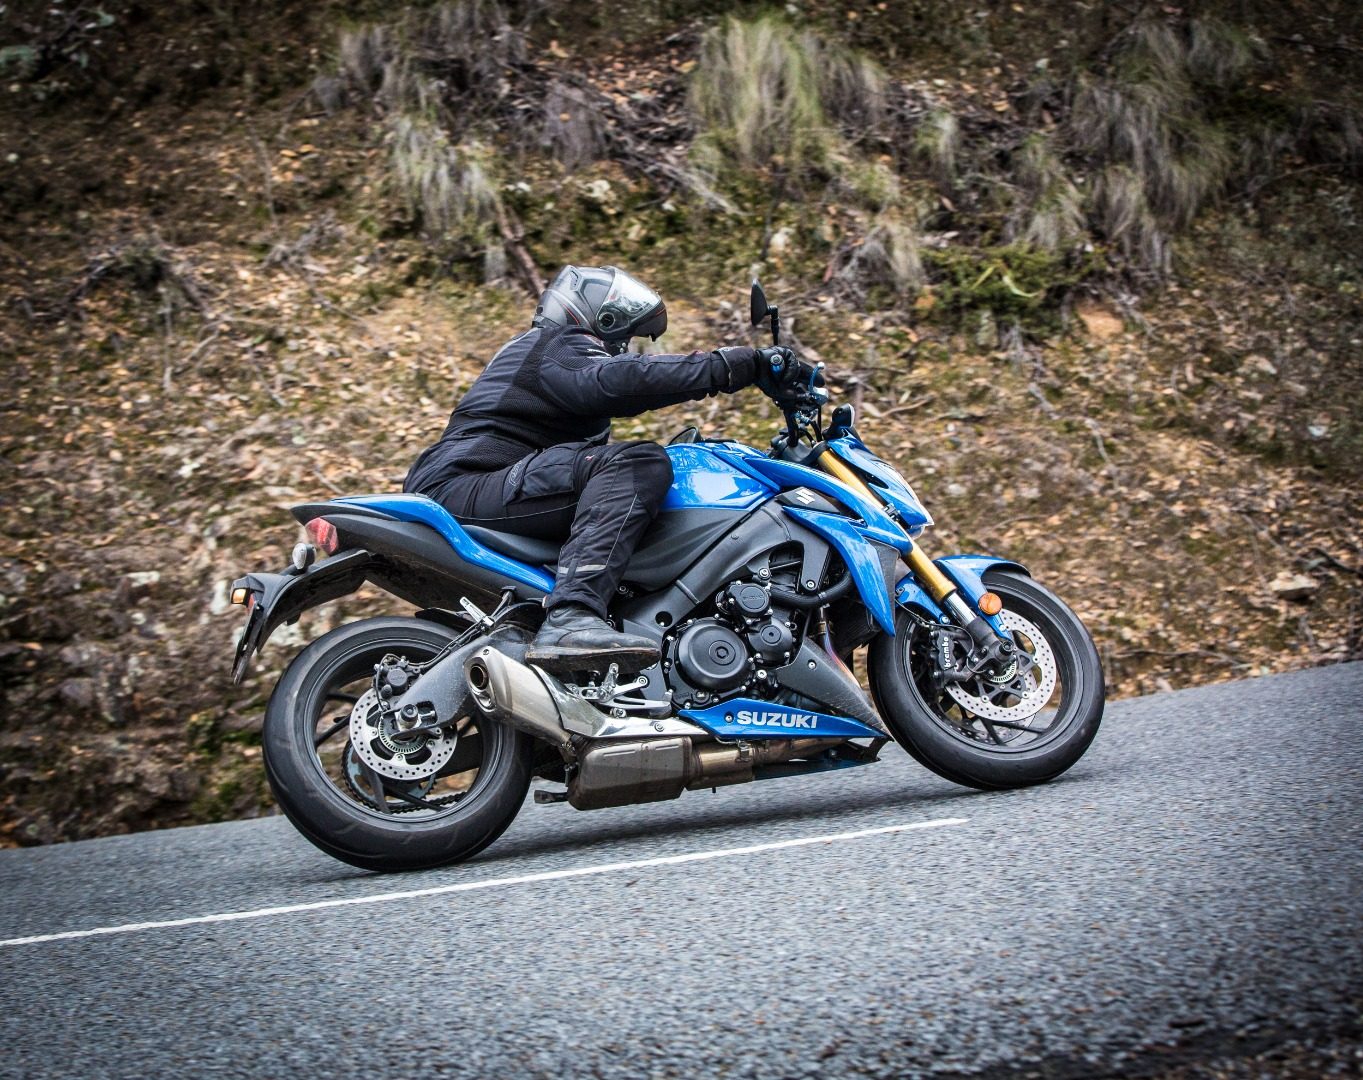 Suzuki's brilliant GSX-S1000 is the supersport of the naked